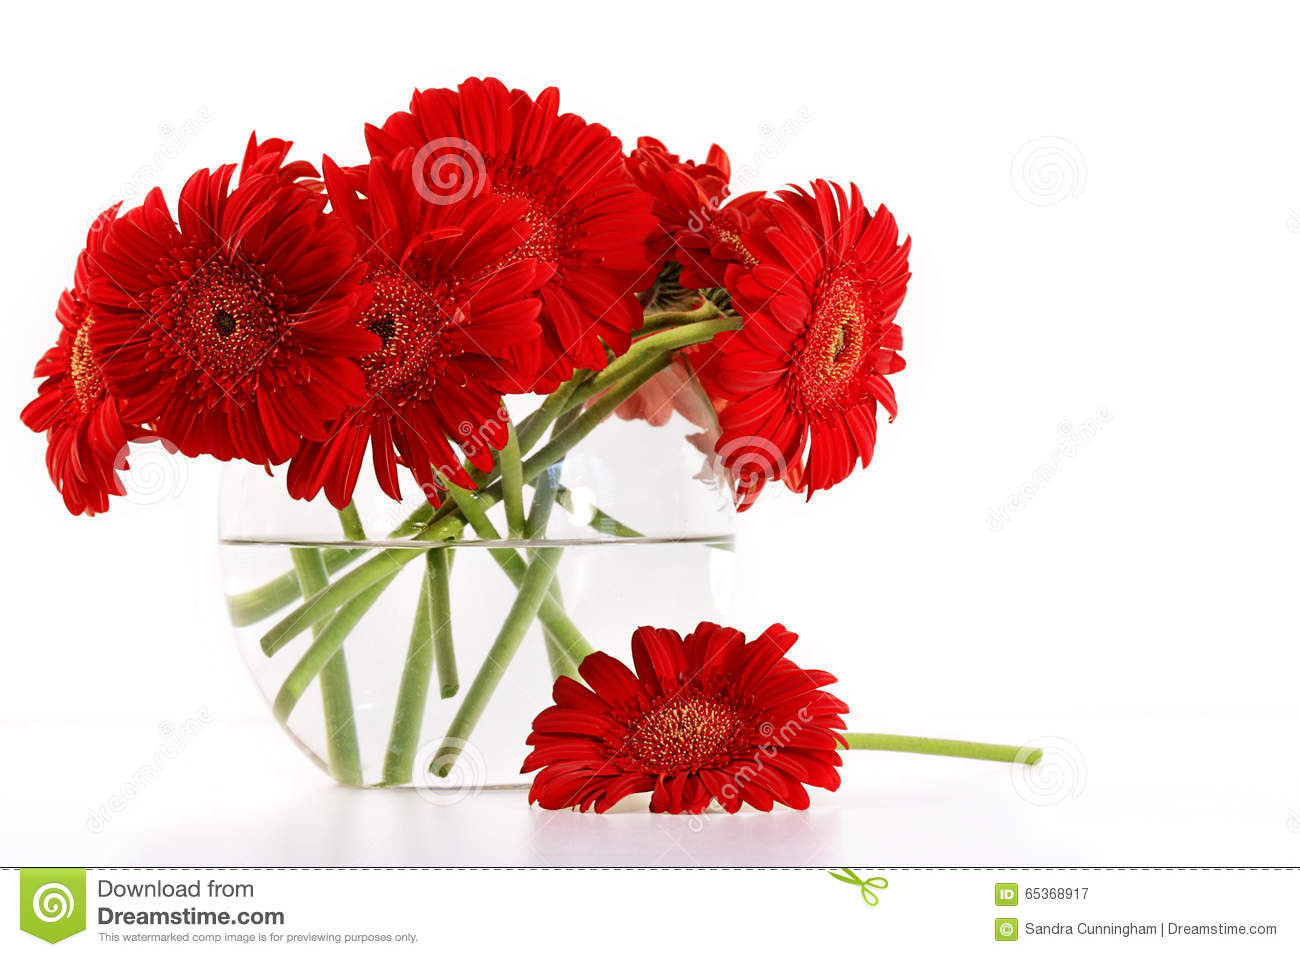 19 Amazing Gerbera Daisy In Vase 2021 free download gerbera daisy in vase of red gerber daisies in vase stock image image of pretty 65368917 inside download red gerber daisies in vase stock image image of pretty 65368917